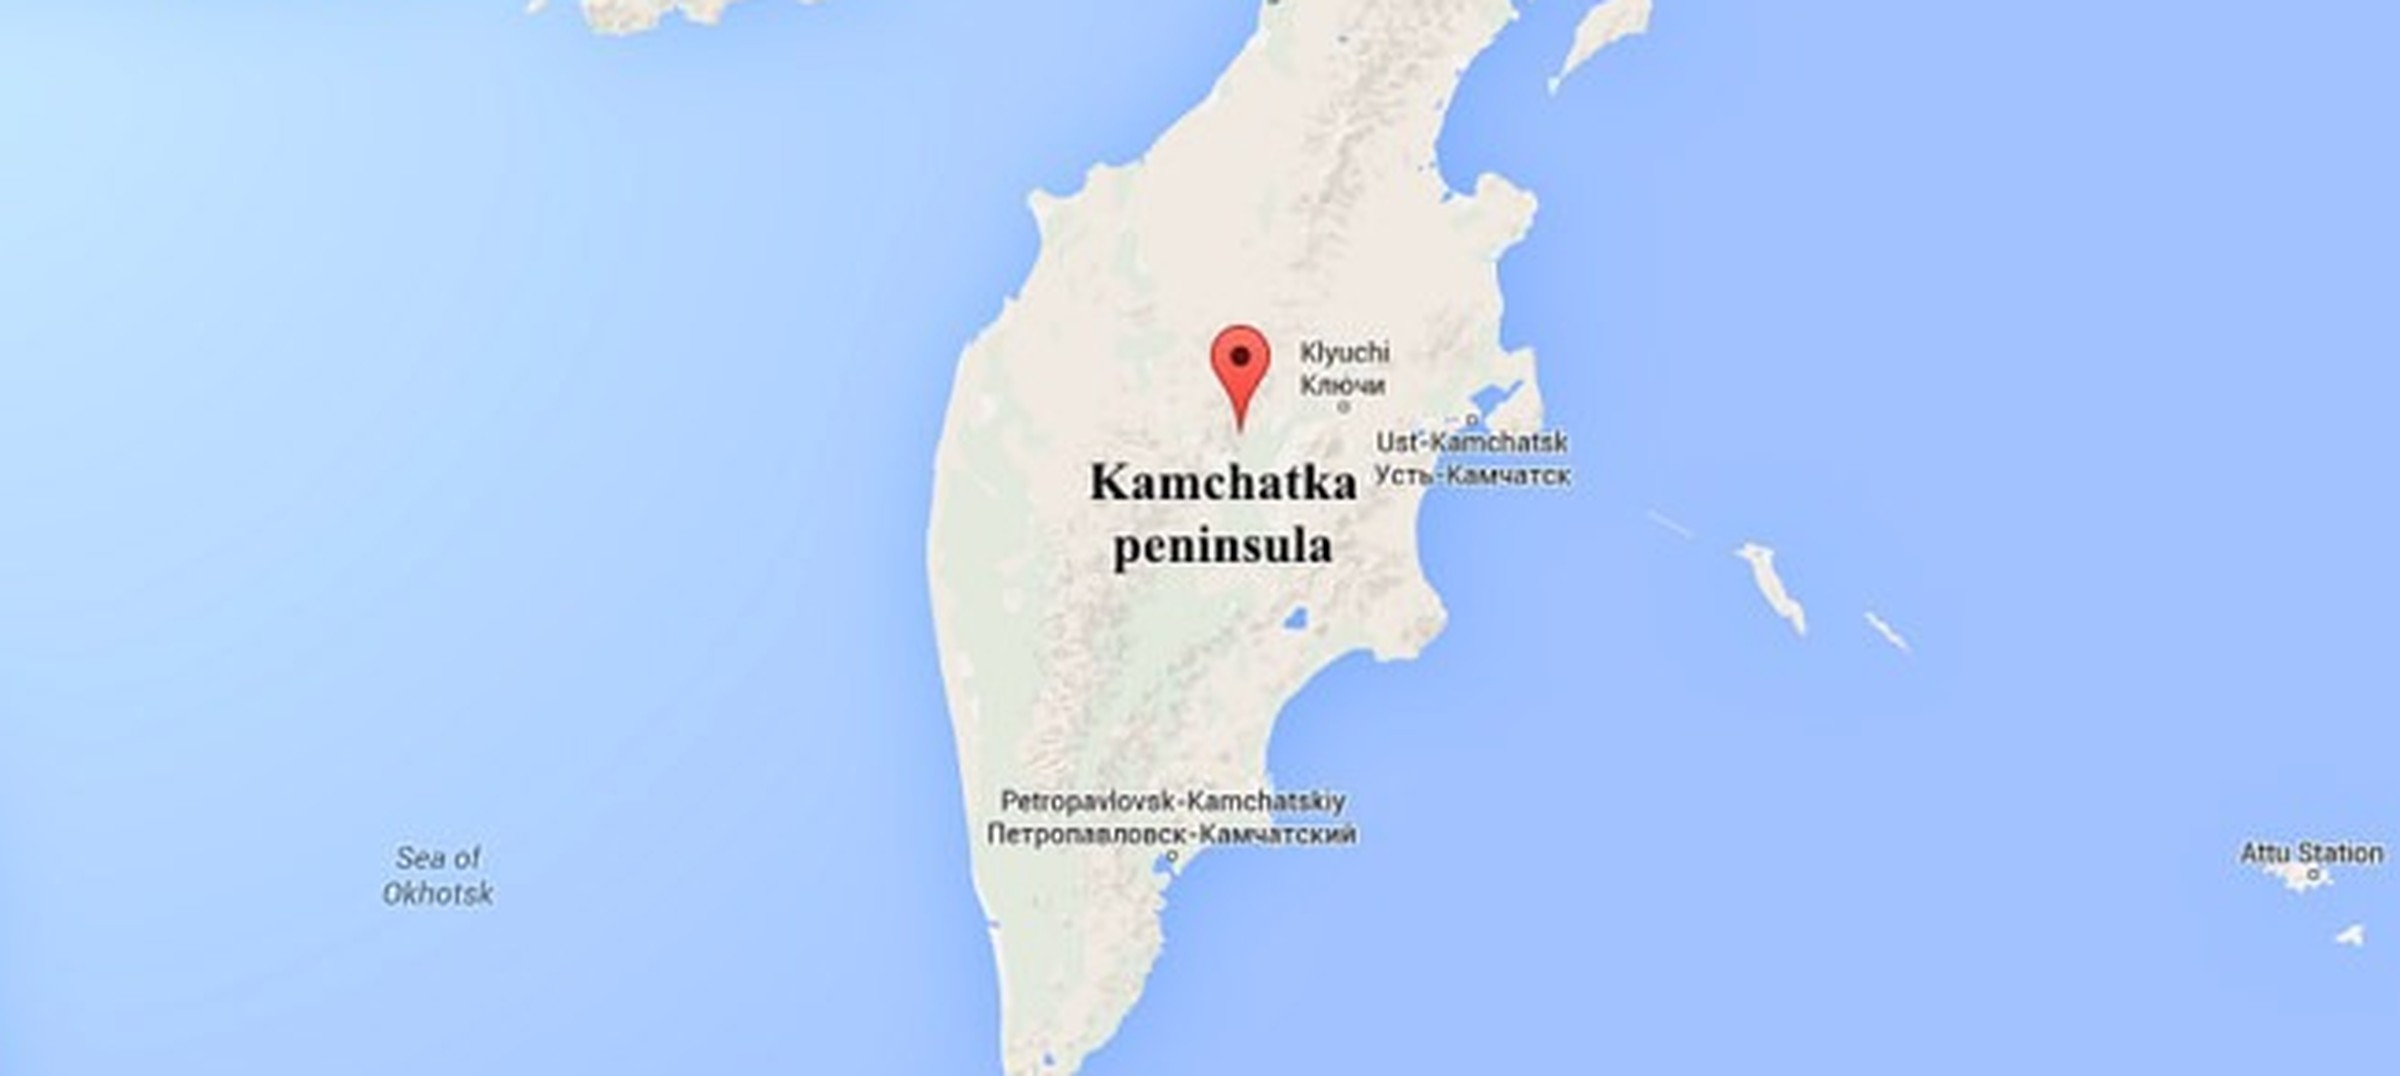 Earthquake of 6.6 magnitude hits Russia, no casualties reported on russia japan map, russia flood map, russia pollution map, russia weather map, russia volcano map, russia environment map, russia 1941 map, russia airport map, russia wildfires map, russia meteor map,